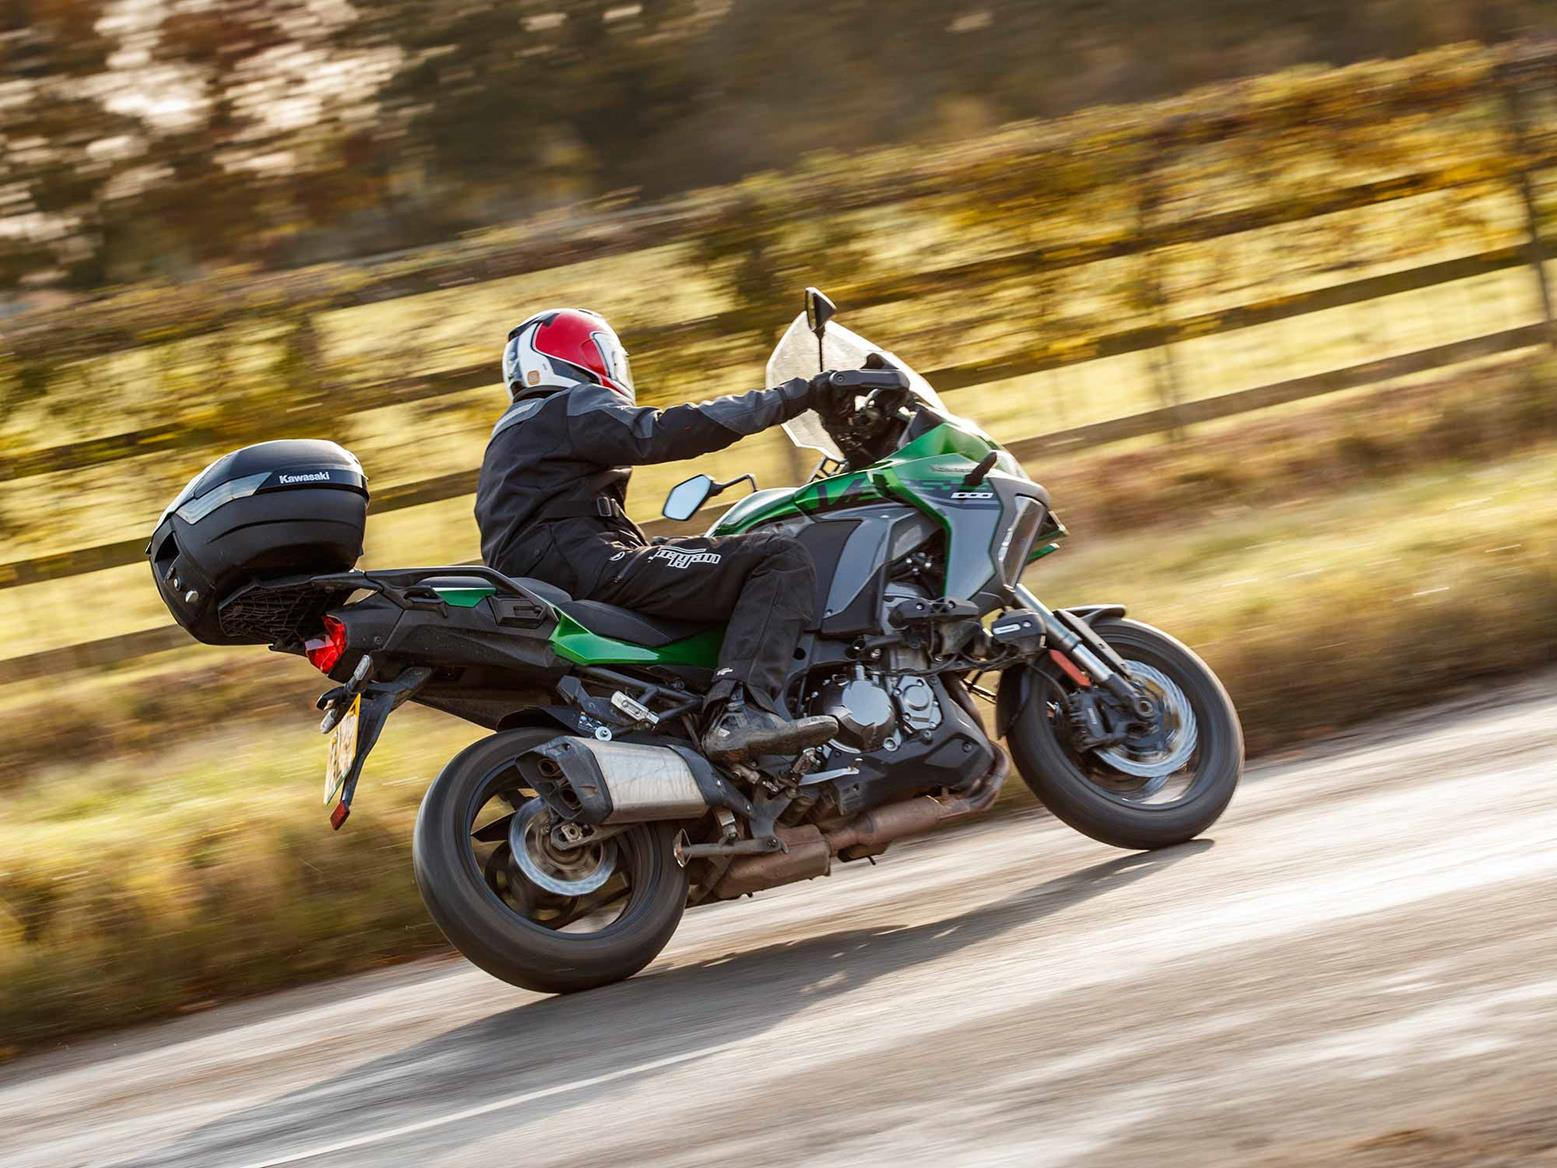 Riding the Kawasaki Versys 1000 SE complete with top box